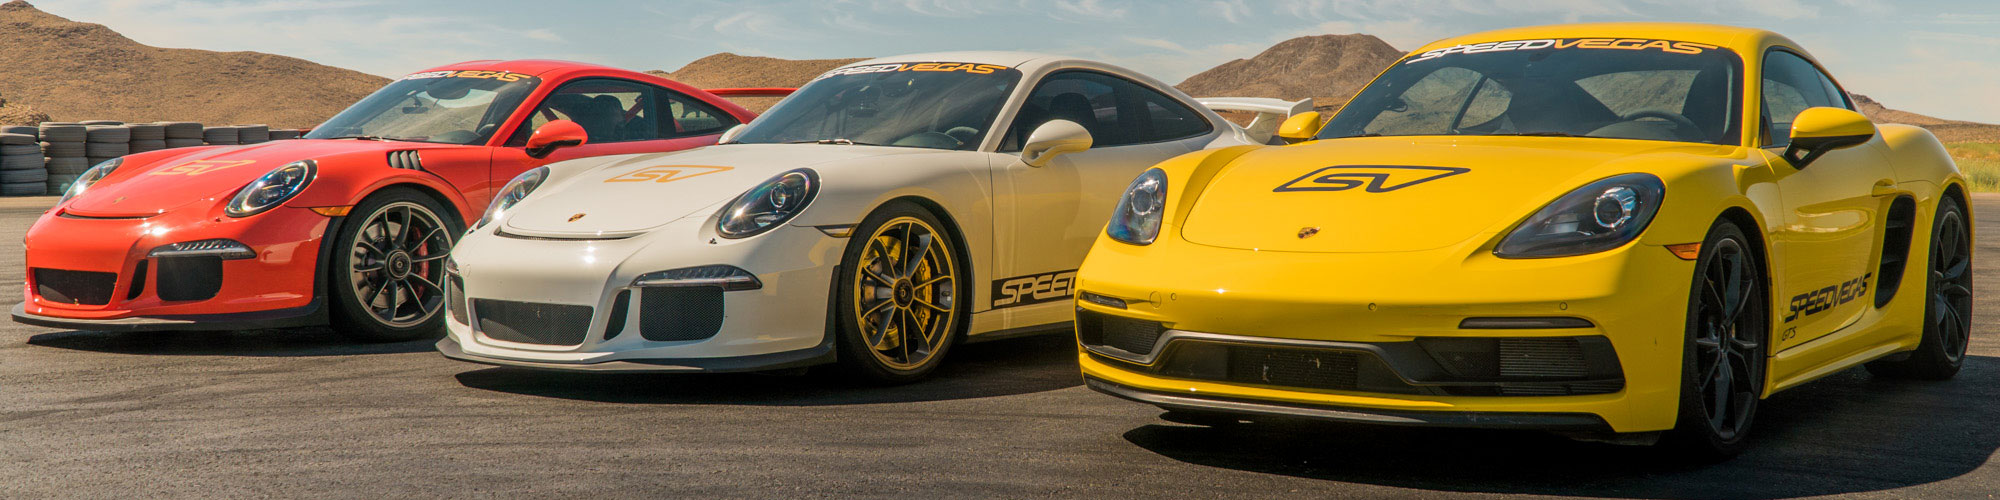 Can't decide between the Porsche 911 GT3 RS, Porsche GT3, and Porsche Cayman 718 GTS? Learn about each model to help you make your decision.